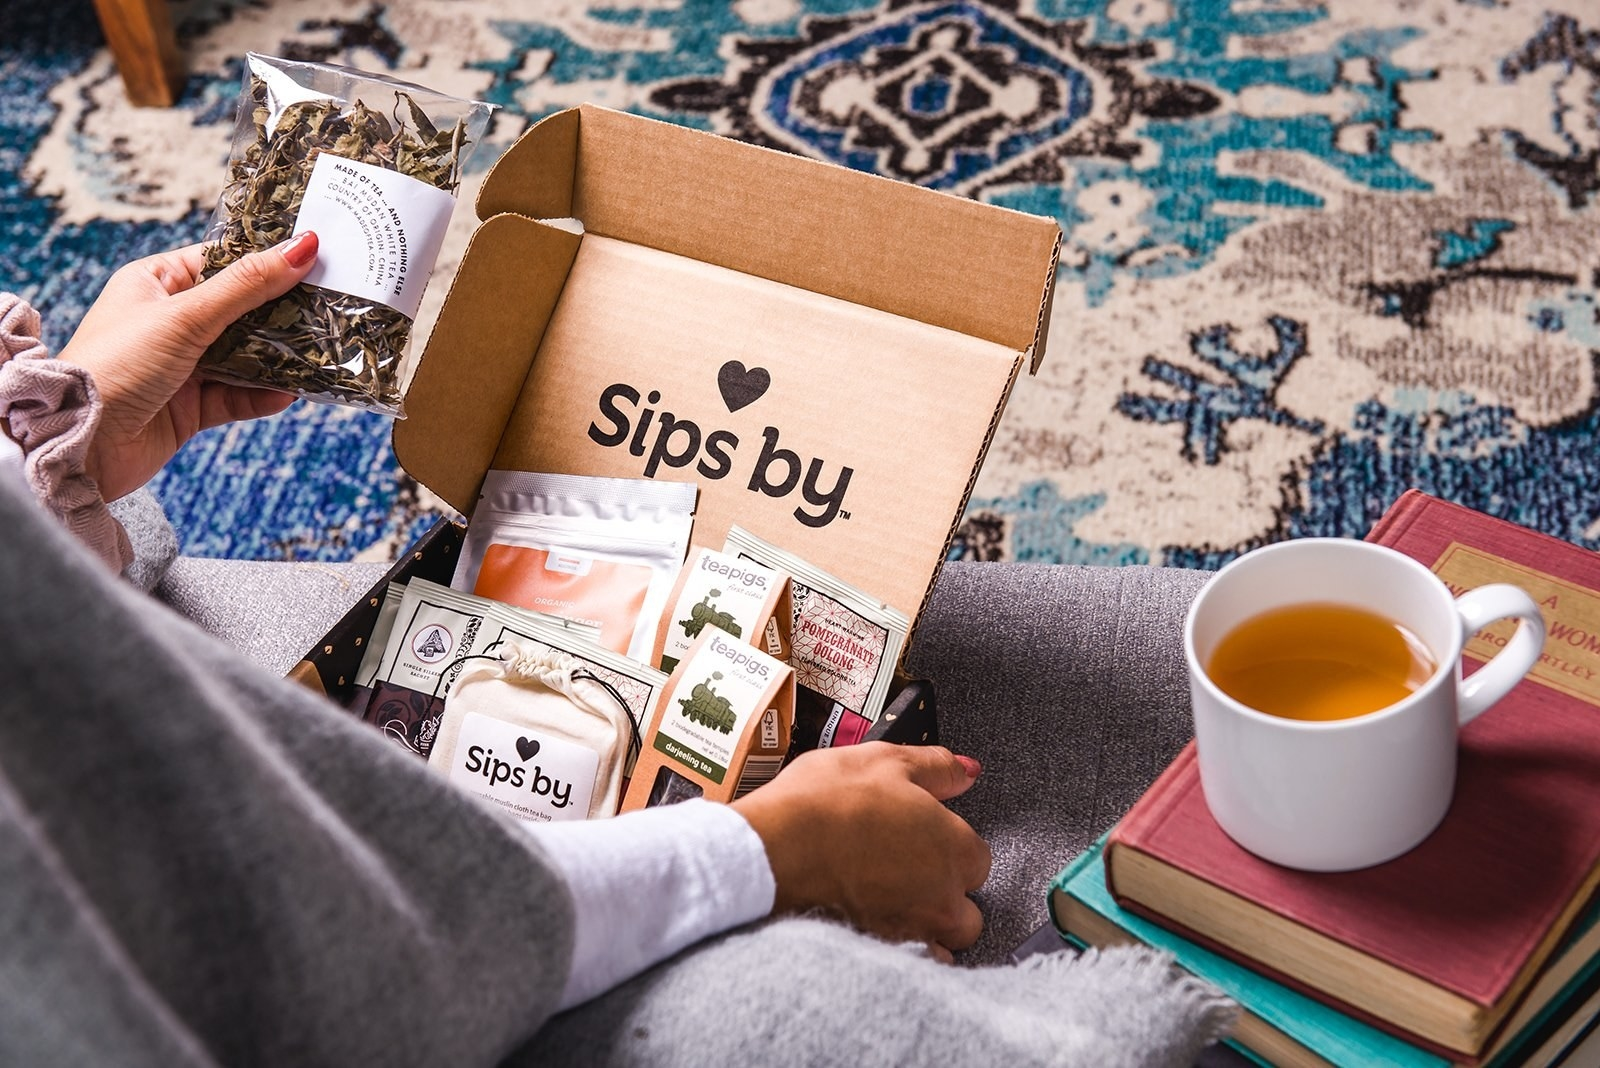 a person reaches for their Sips By box which is filled with teas